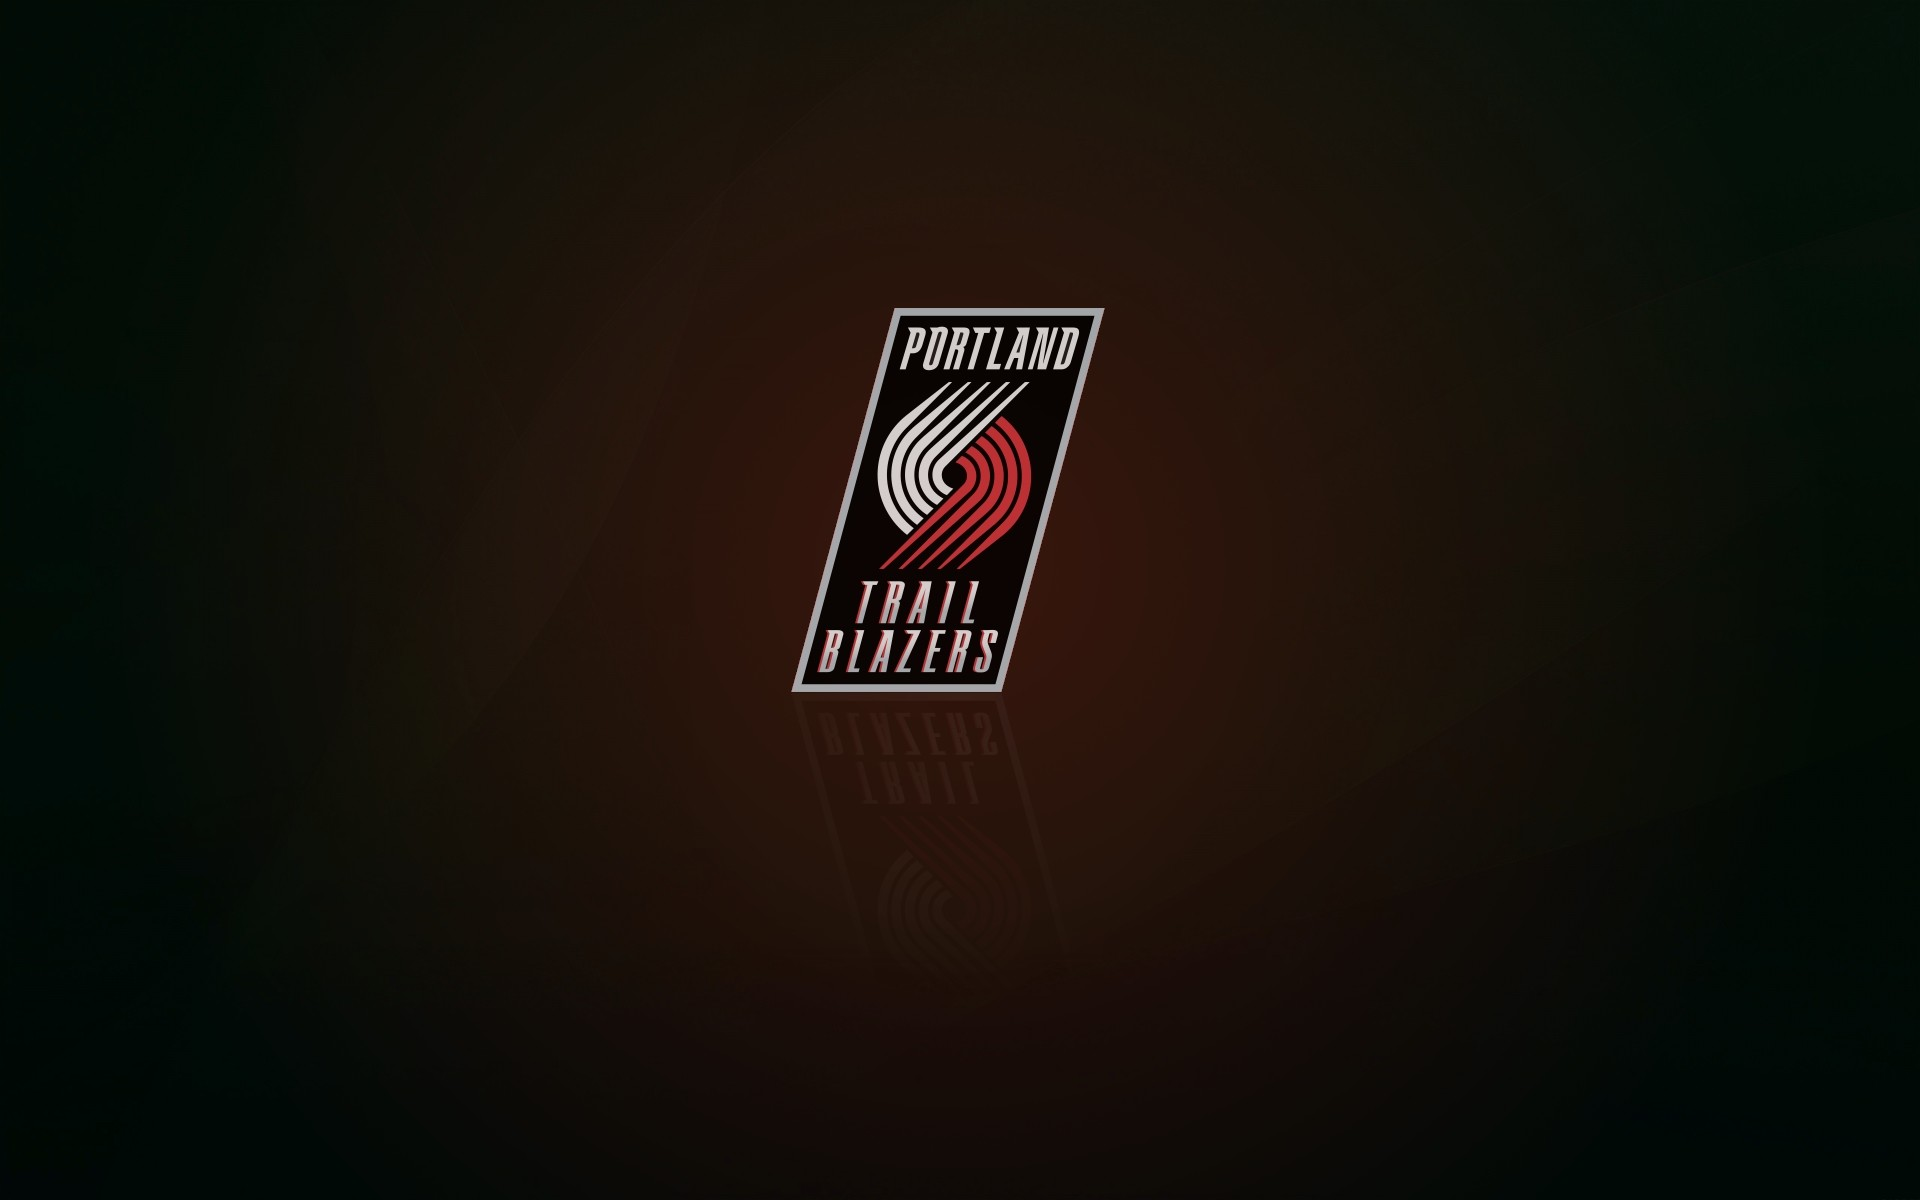 1920x1200 Portland Trail Blazers wallpaper and logo with shadow, widescreen  px, 16x10